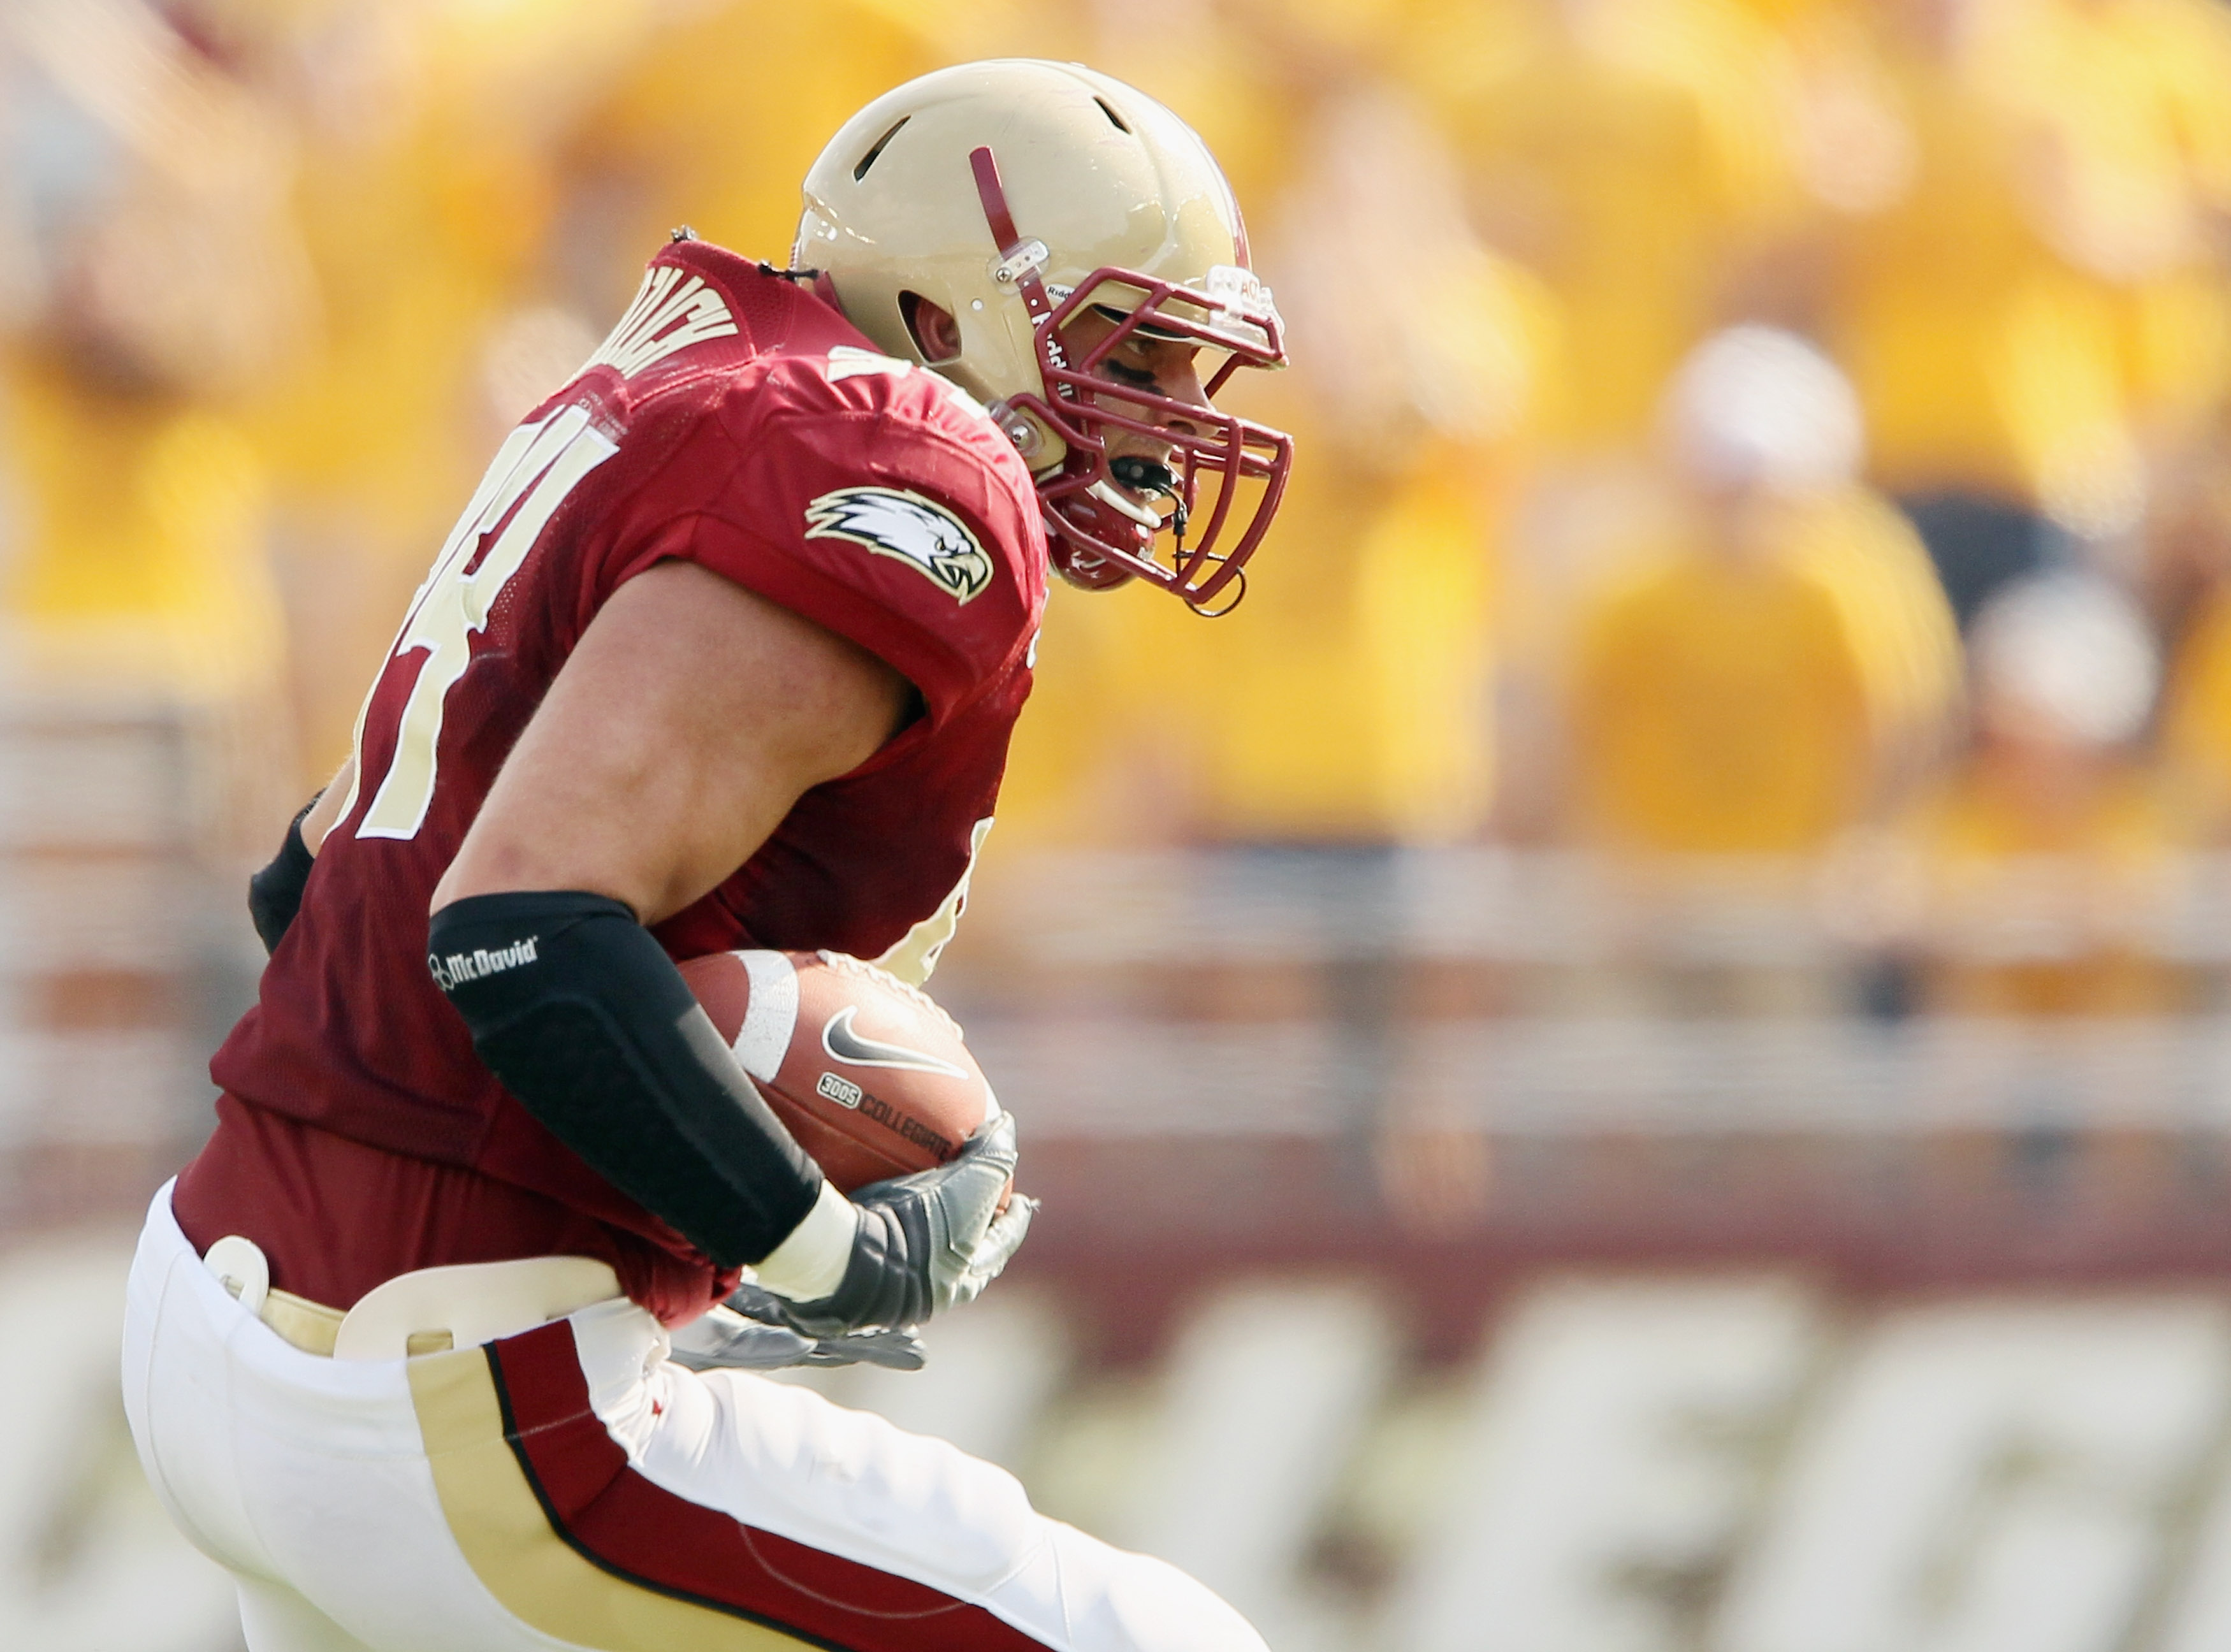 CHESTNUT HILL, MA - SEPTEMBER 25:  Mark Herzlich #94 of the Boston College Eagles carries the ball after he intercepted a pass from Tyrod Taylor of the Virginia Tech Hokies on September 25, 2010 at Alumni Stadium in Chestnut Hill, Massachusetts. Virginia